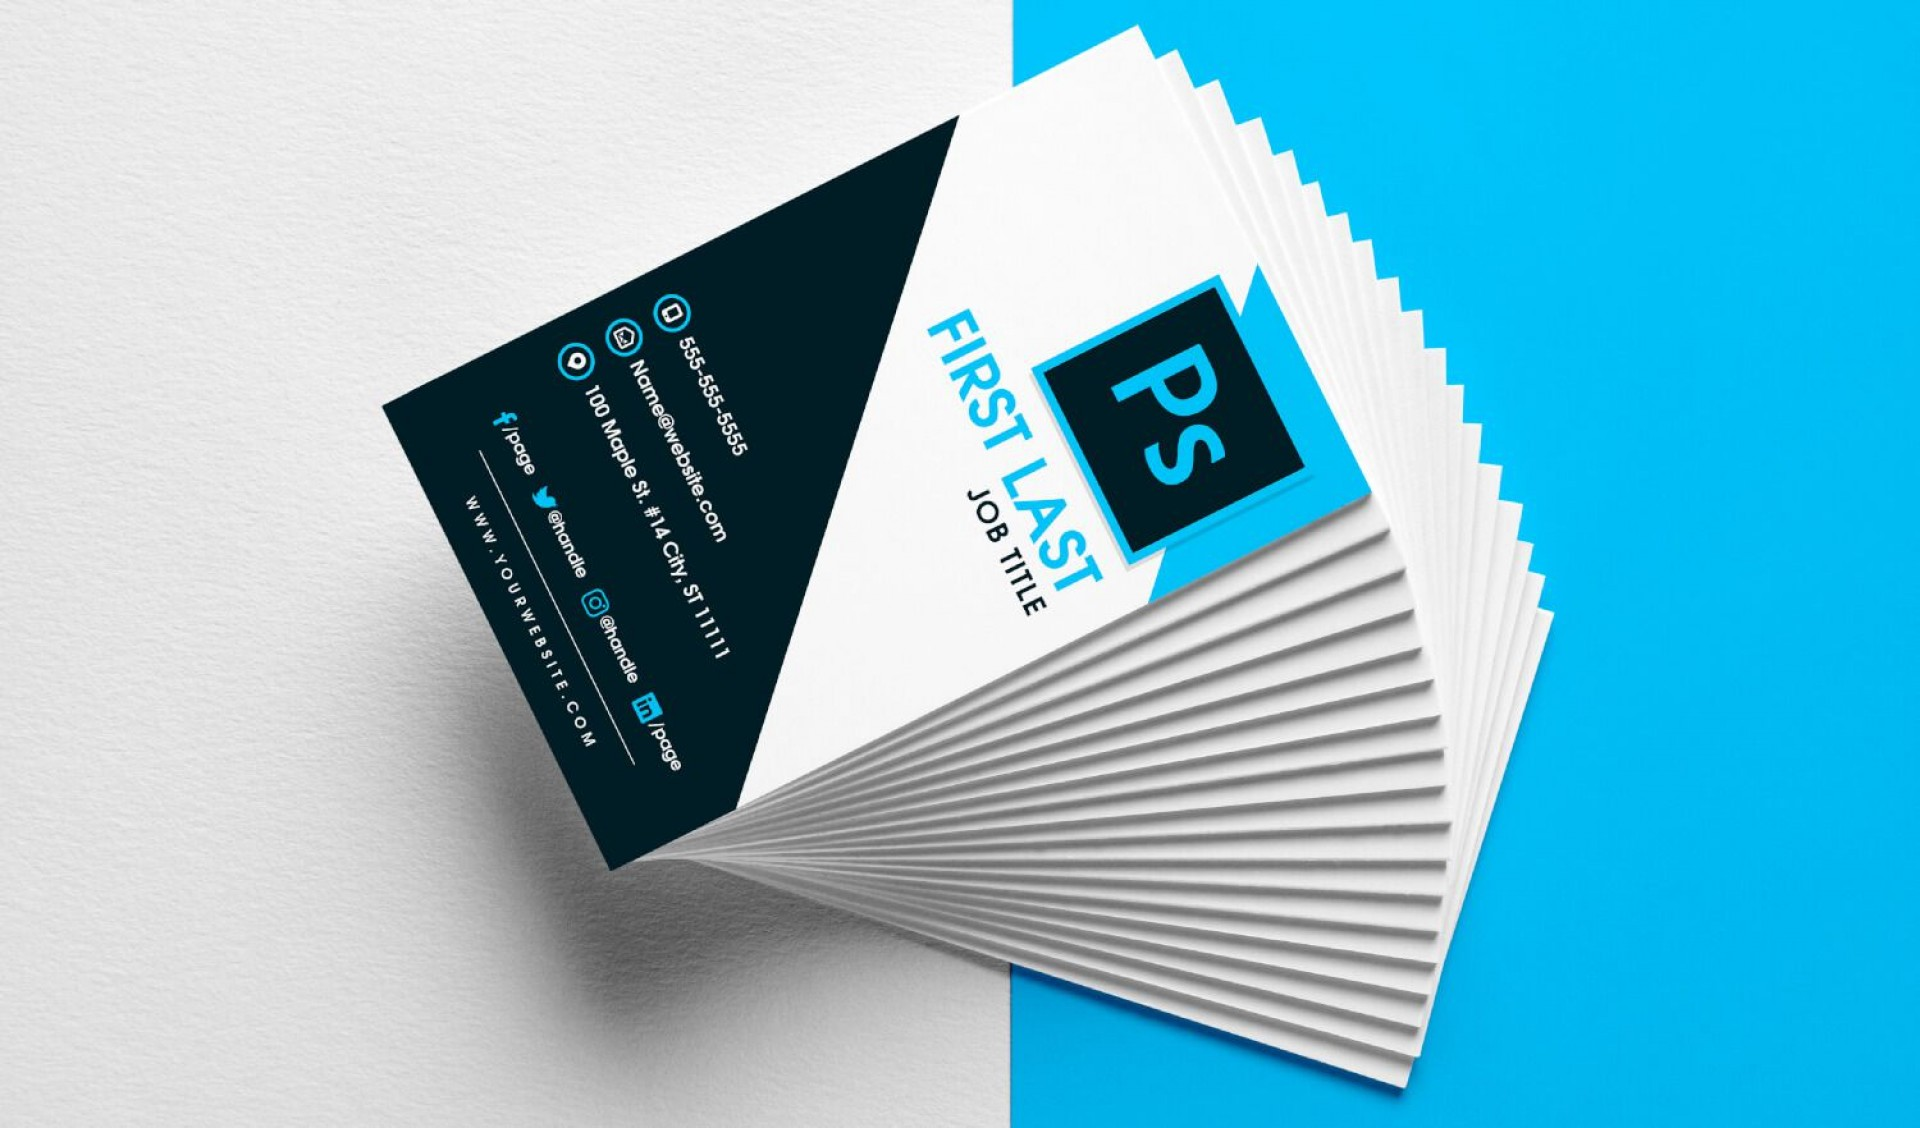 008 Unbelievable Psd Busines Card Template Highest Quality  Computer Free With Bleed1920